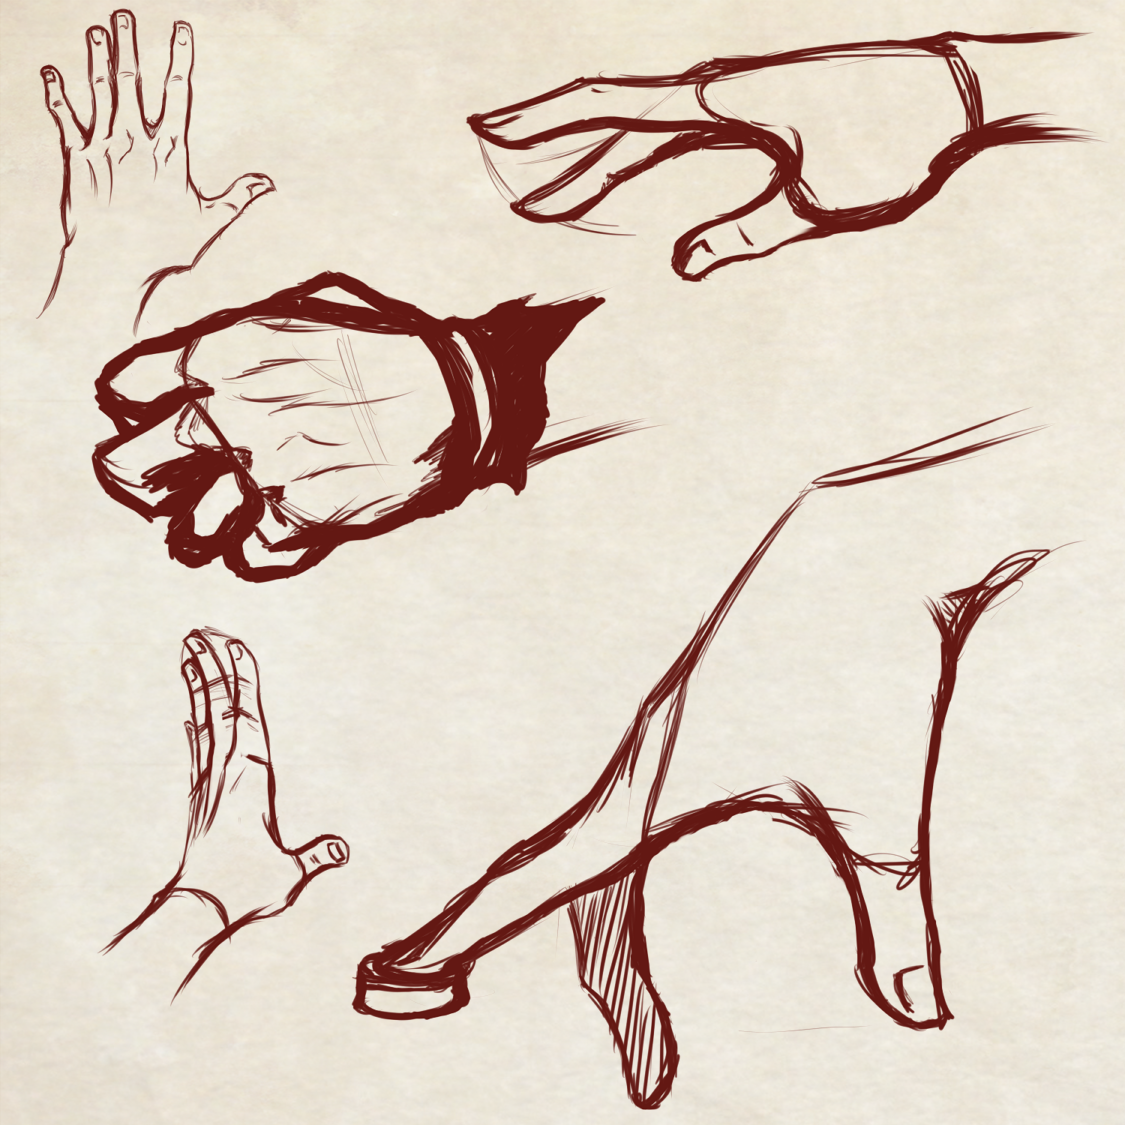 Quick Hands Practice - More to Come! by Dex91 on DeviantArt